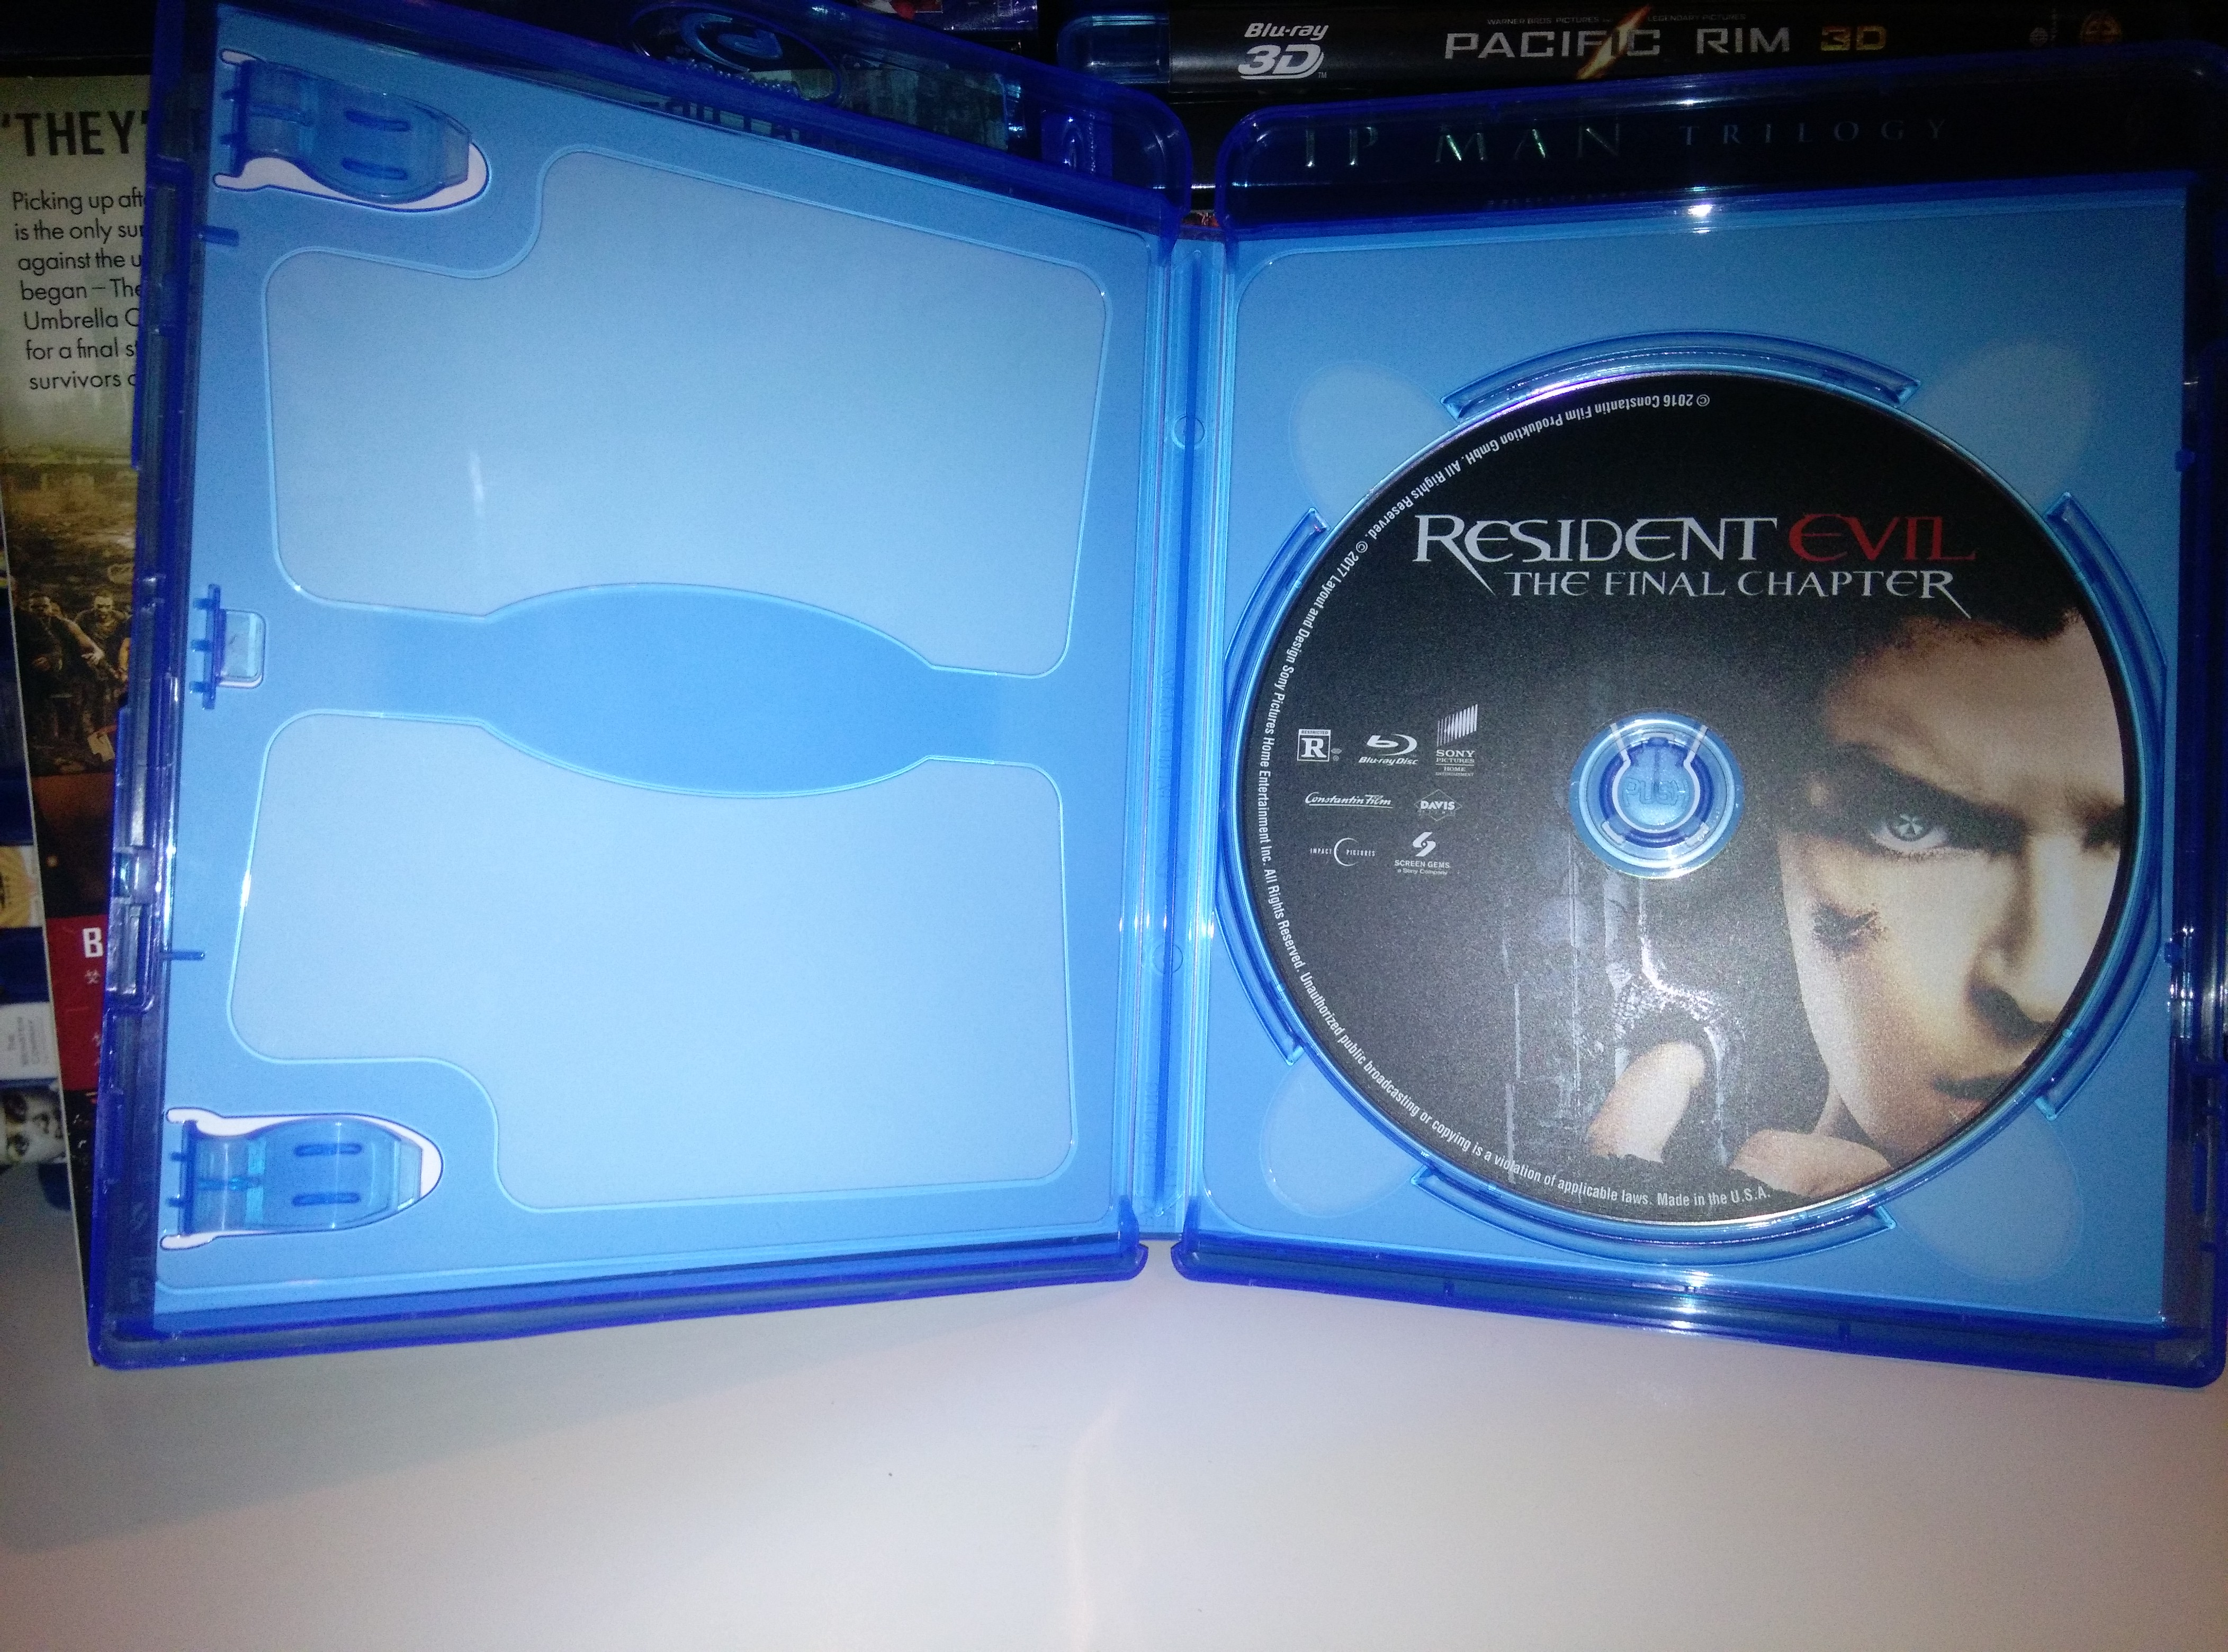 Resident Evil: The Final Chapter disc